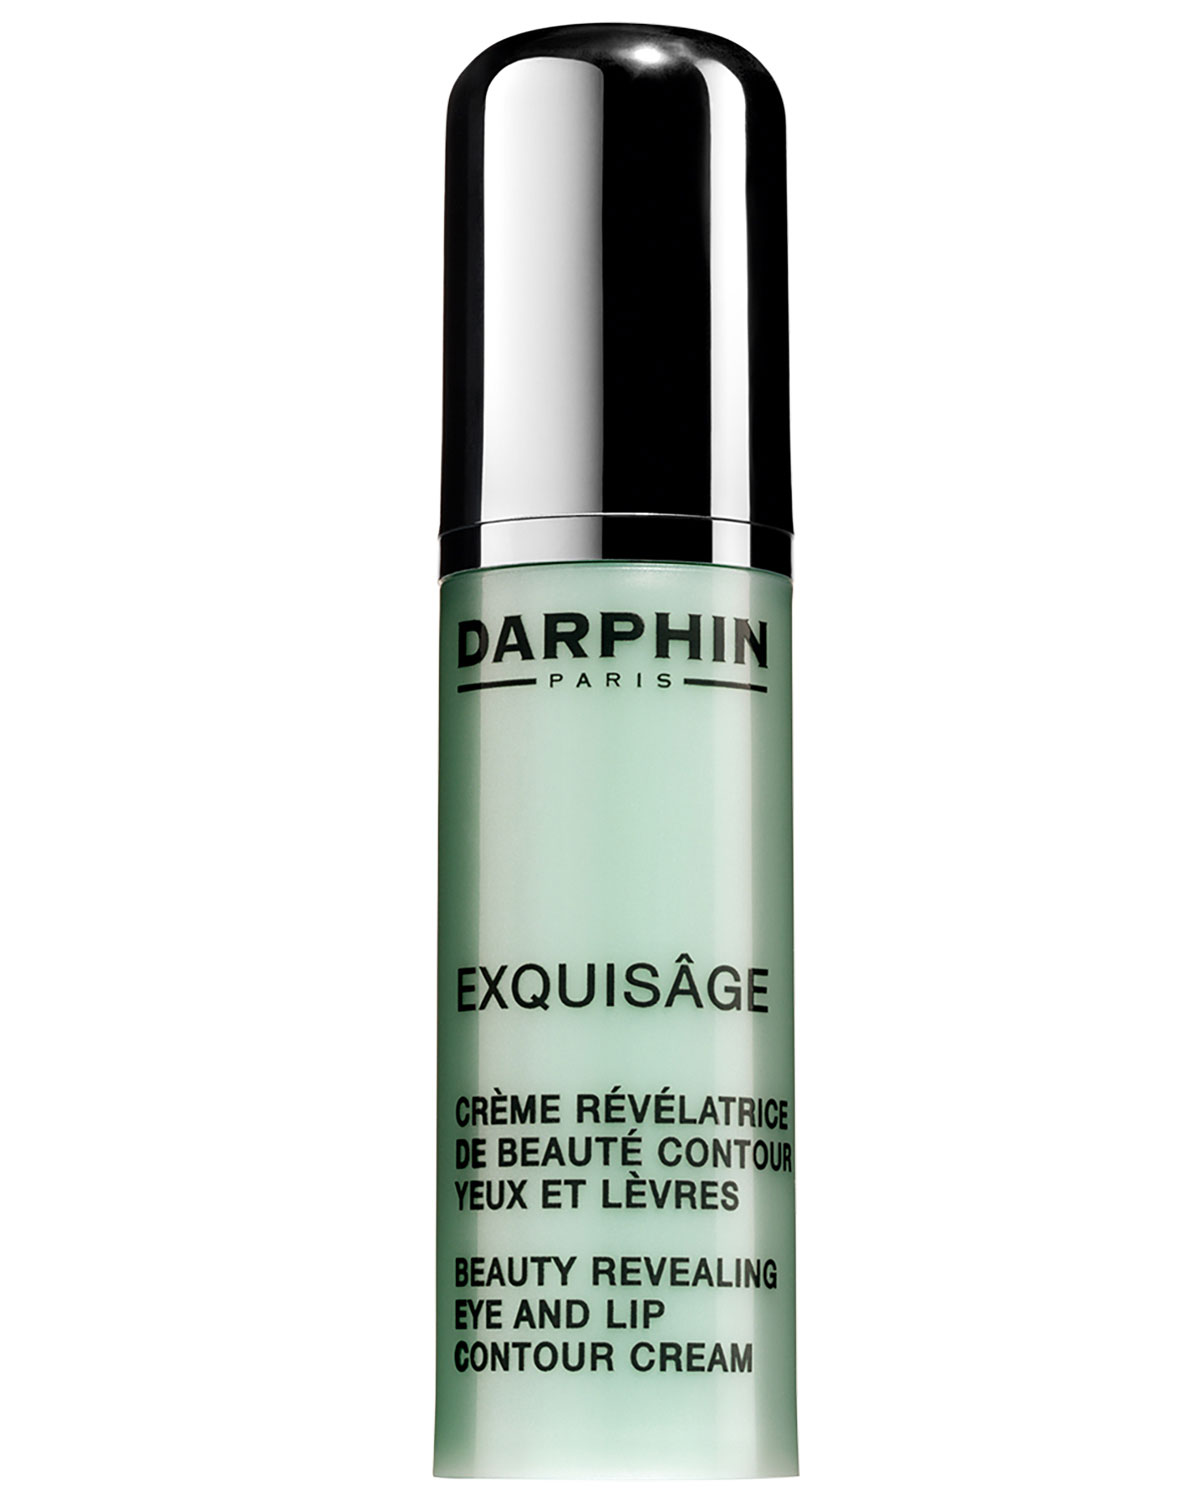 DARPHIN Exquisage Beauty Revealing Eye And Lip Contour Cream, 0.5 Oz./ 15 Ml